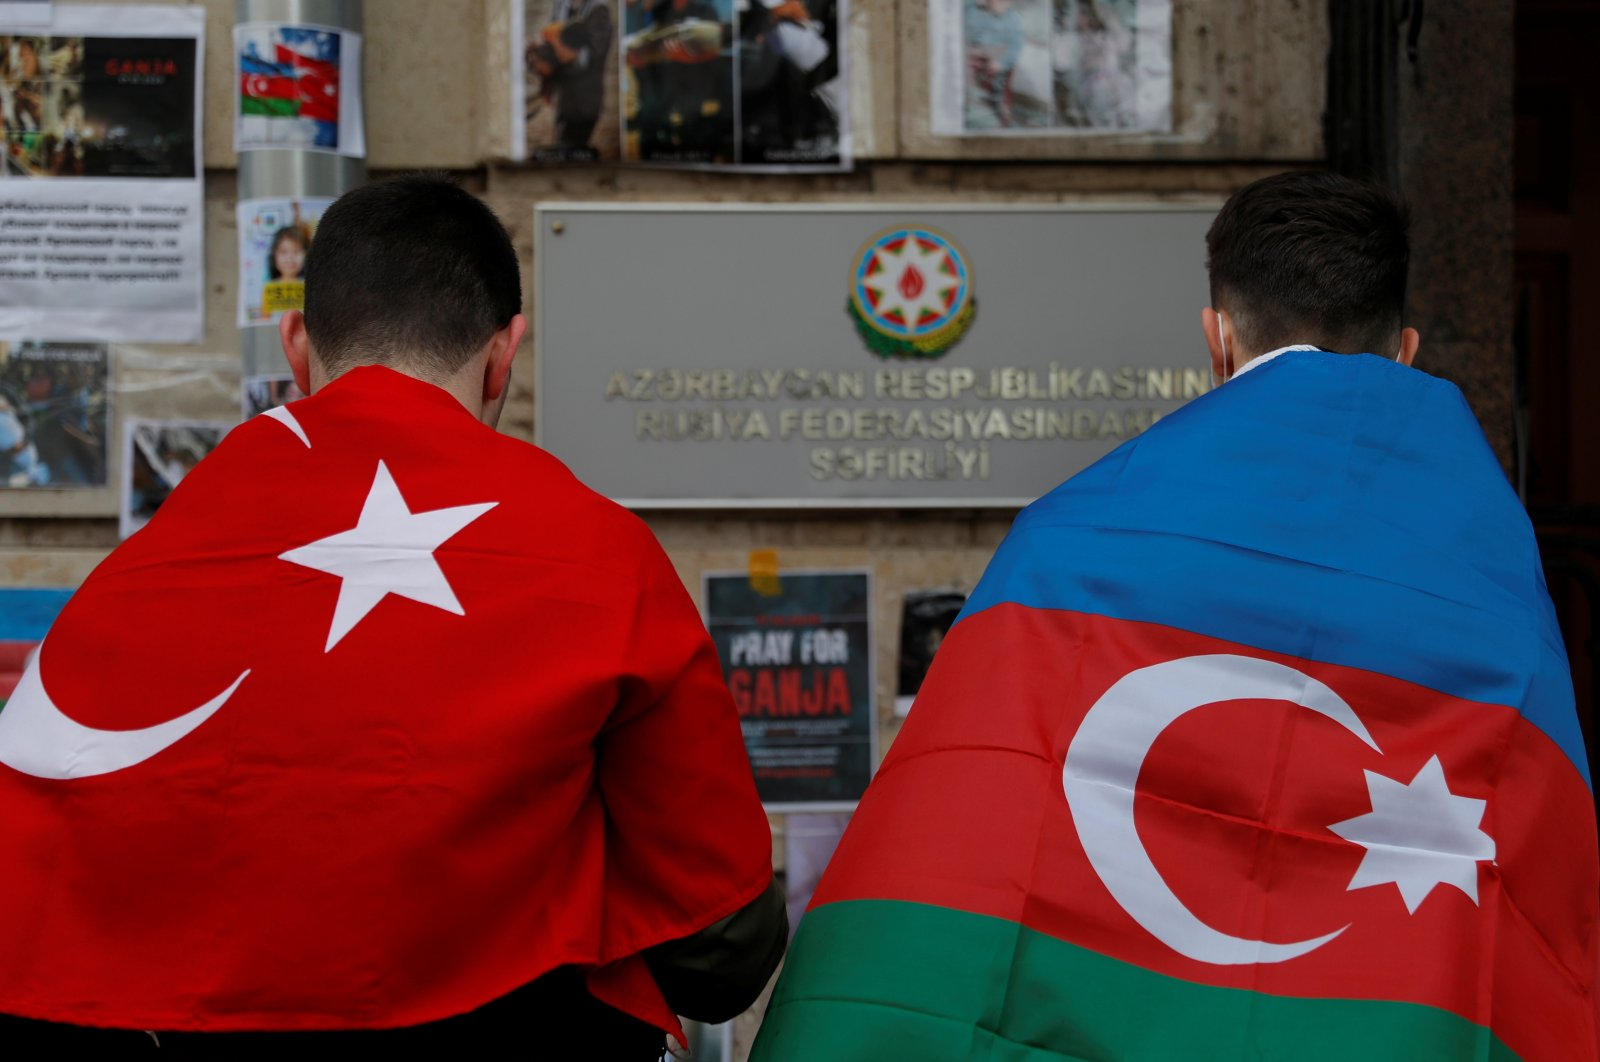 Men holding the national flags of Azerbaijan and Turkey stand next to a makeshift memorial for people killed in Azerbaijan during the military conflict over the region of Nagorno-Karabakh, outside the embassy of Azerbaijan in Moscow, Russia, Oct. 19, 2020. (Reuters Photo)